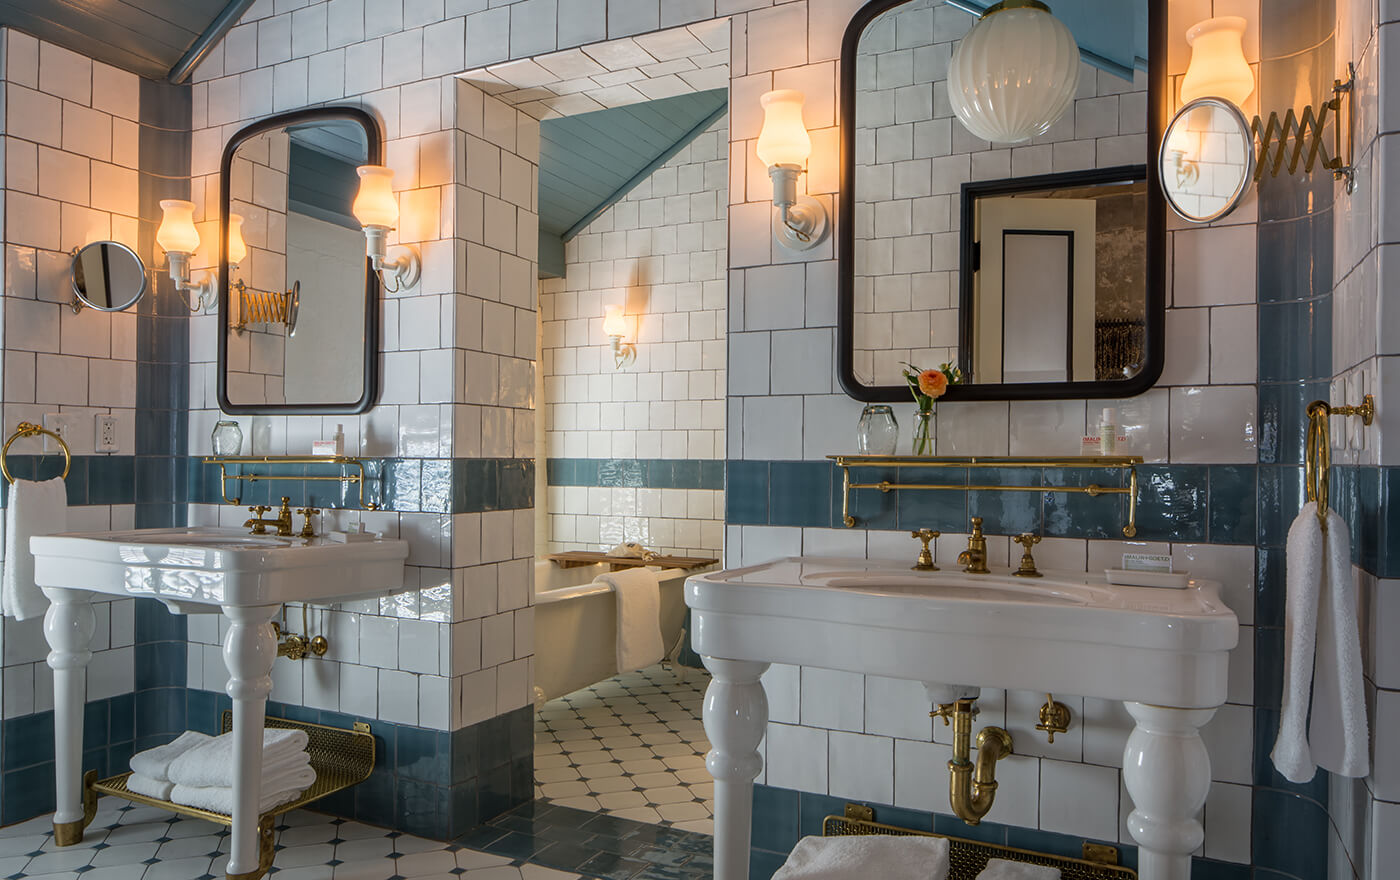 A picture of the bathroom of Hotel Emma's Martizen suite option. Pictured is a double vanity with a claw white foot tub.